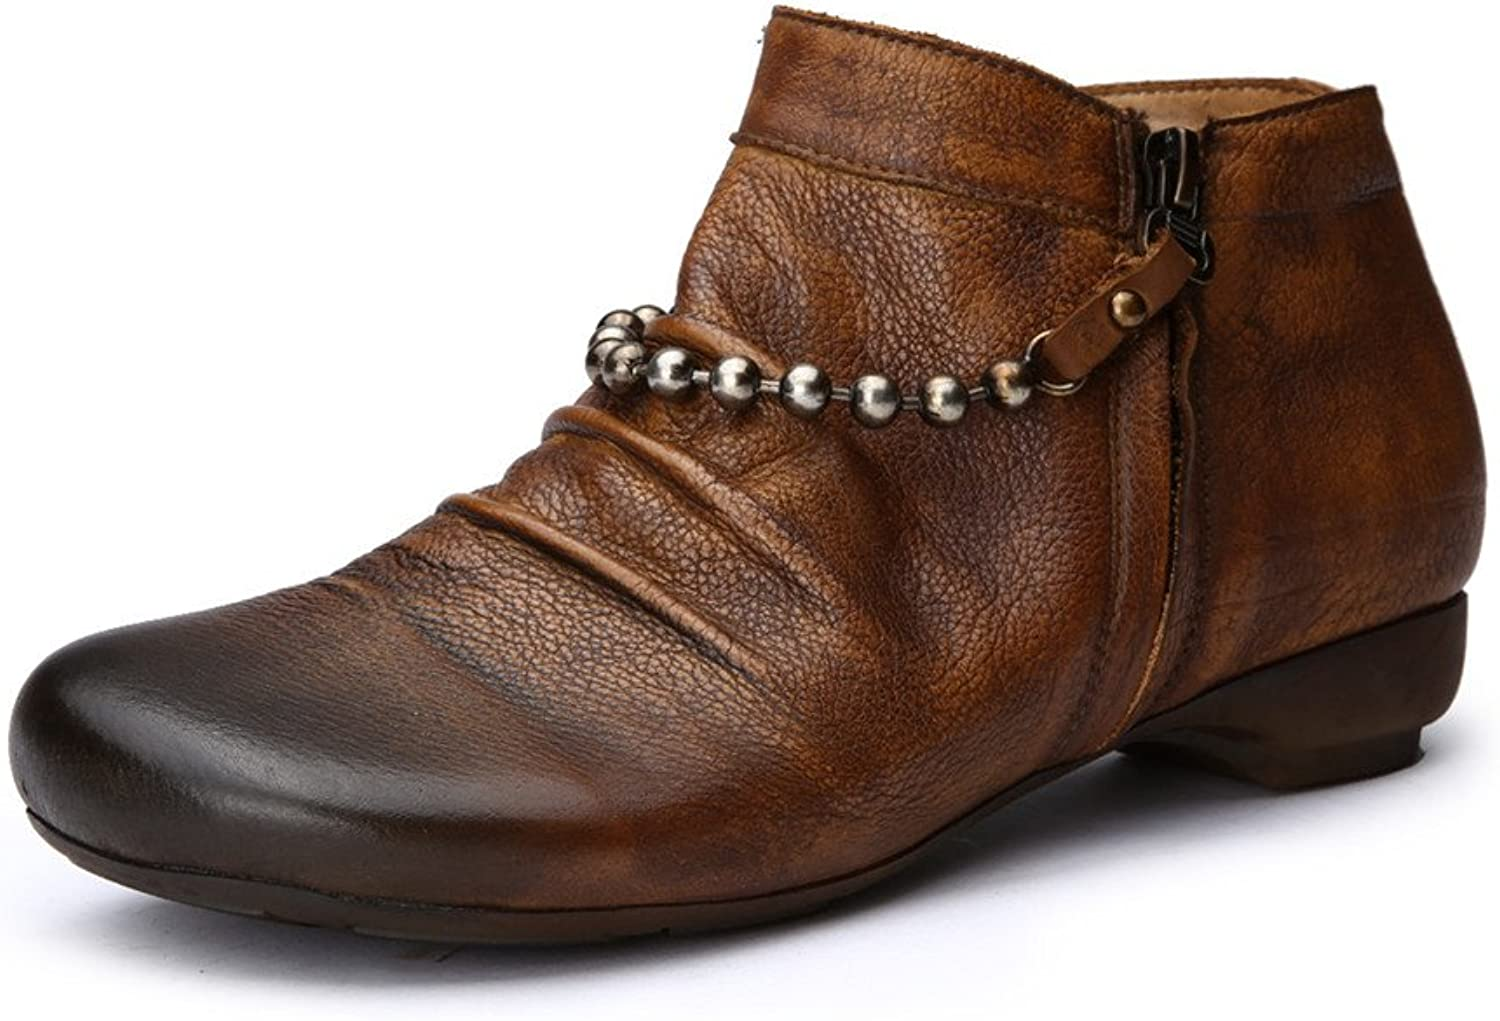 Dwarves Handmade Retro Leather Ankle Boots for Women Metal Chain Decorated Camel